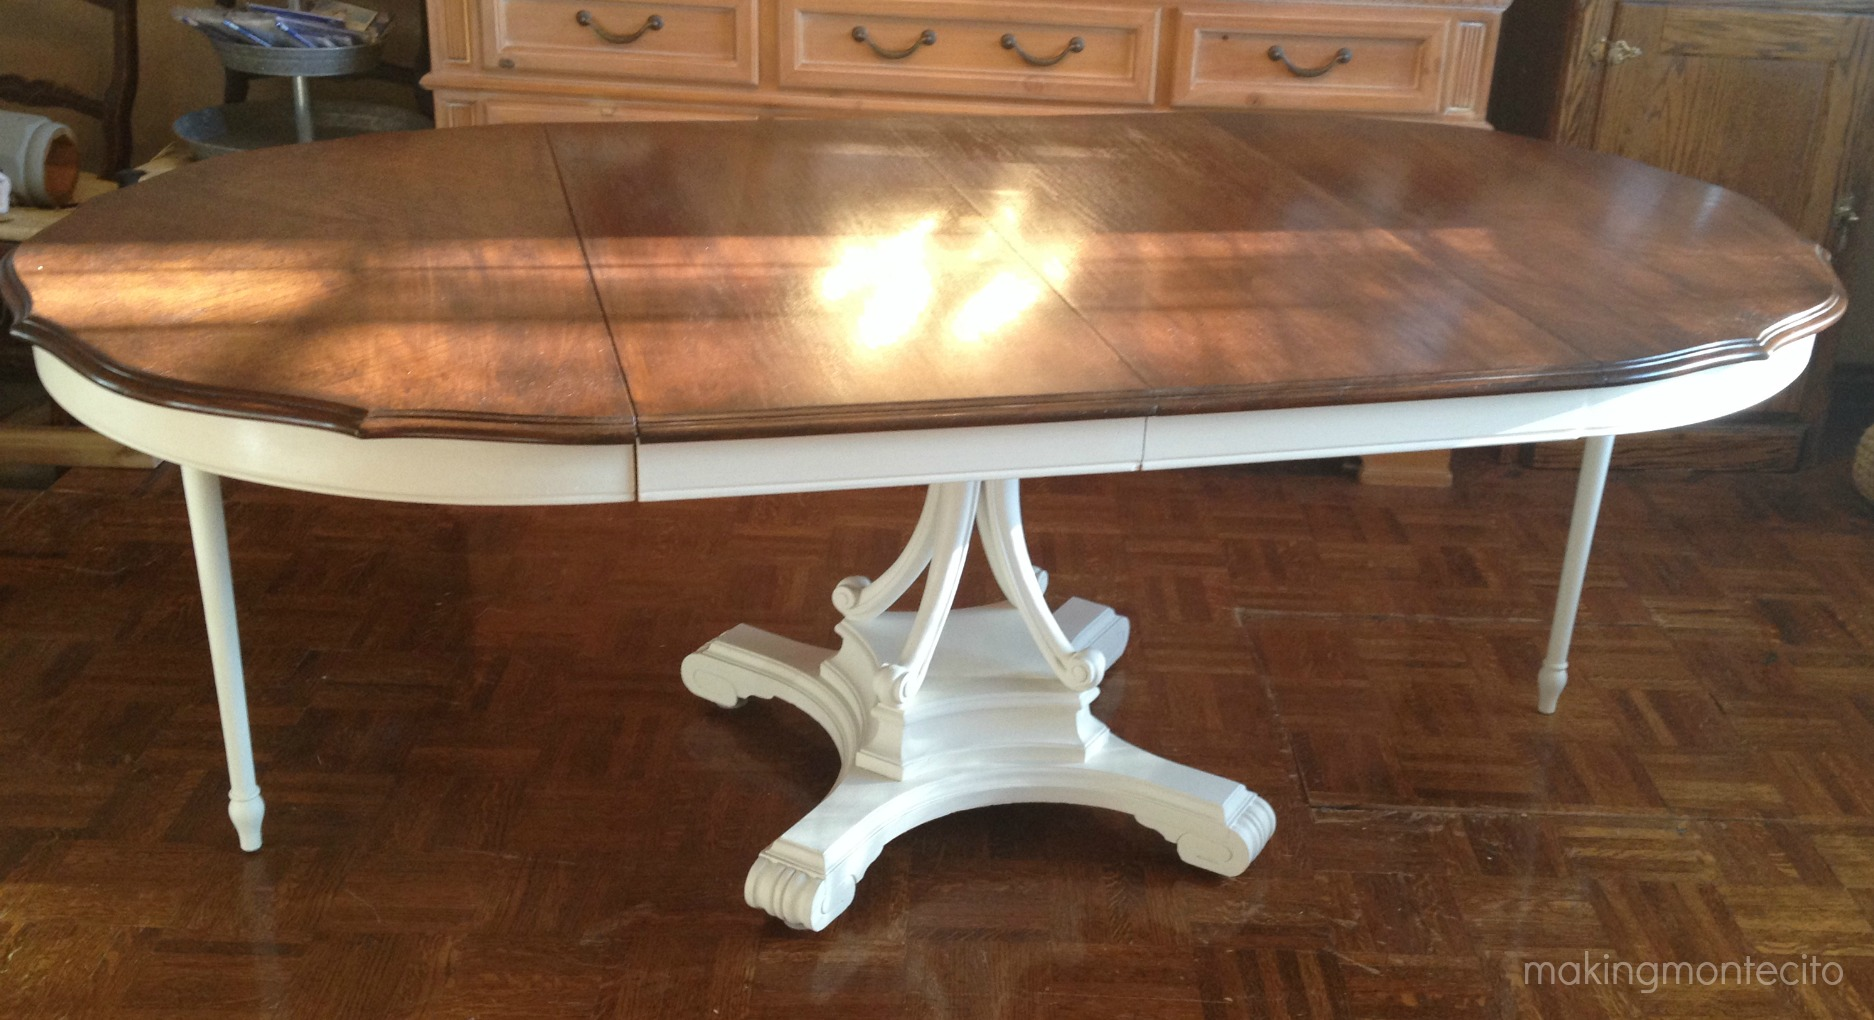 Vintage dining table updated - making montecito 4